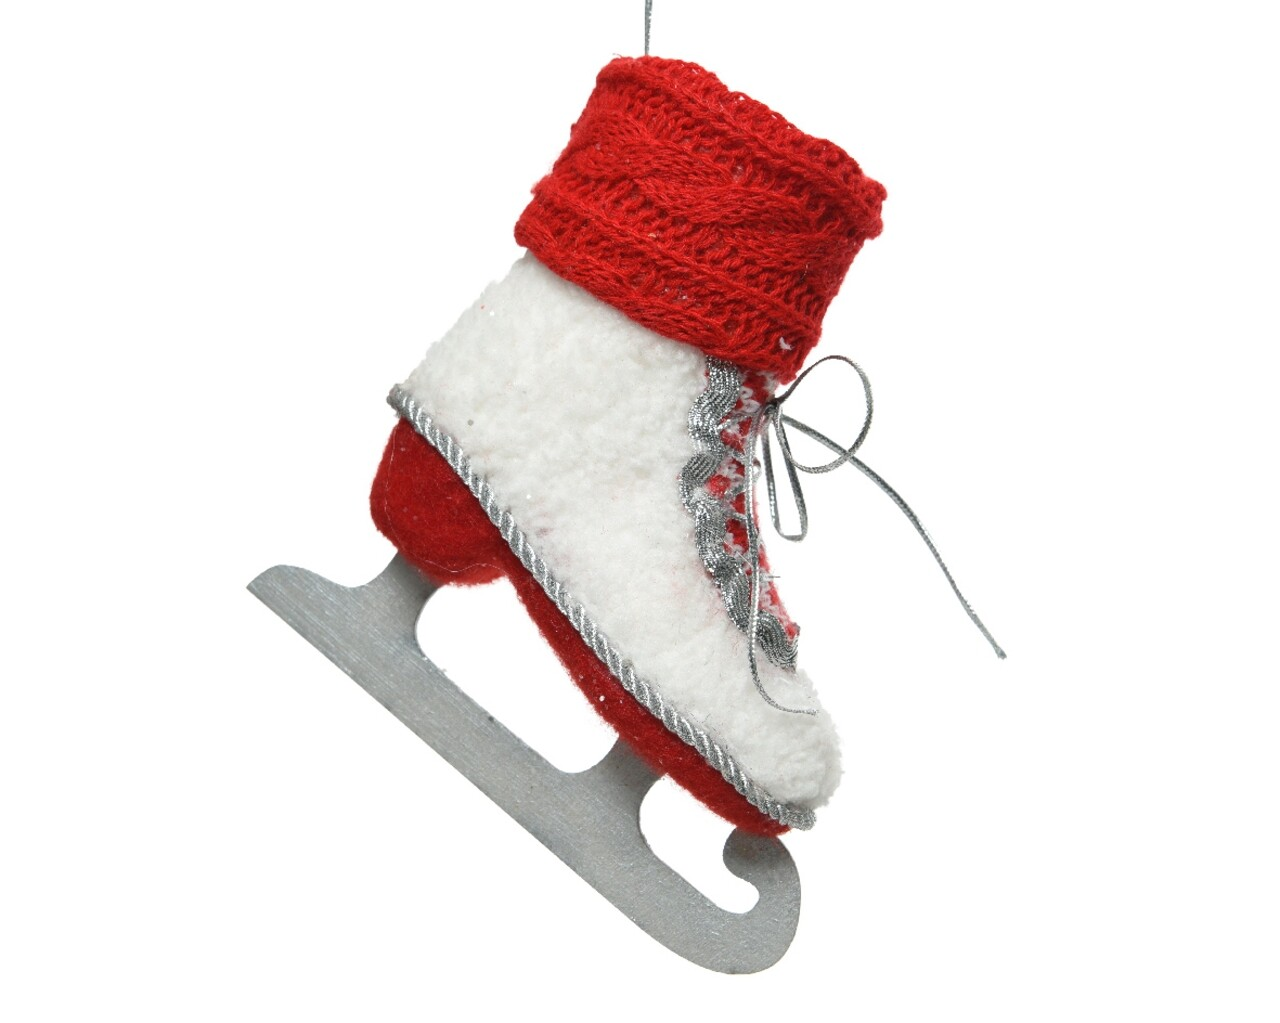 Decoratiune, Decoris, Ice skate, 9x24x25 cm, Rosu/alb